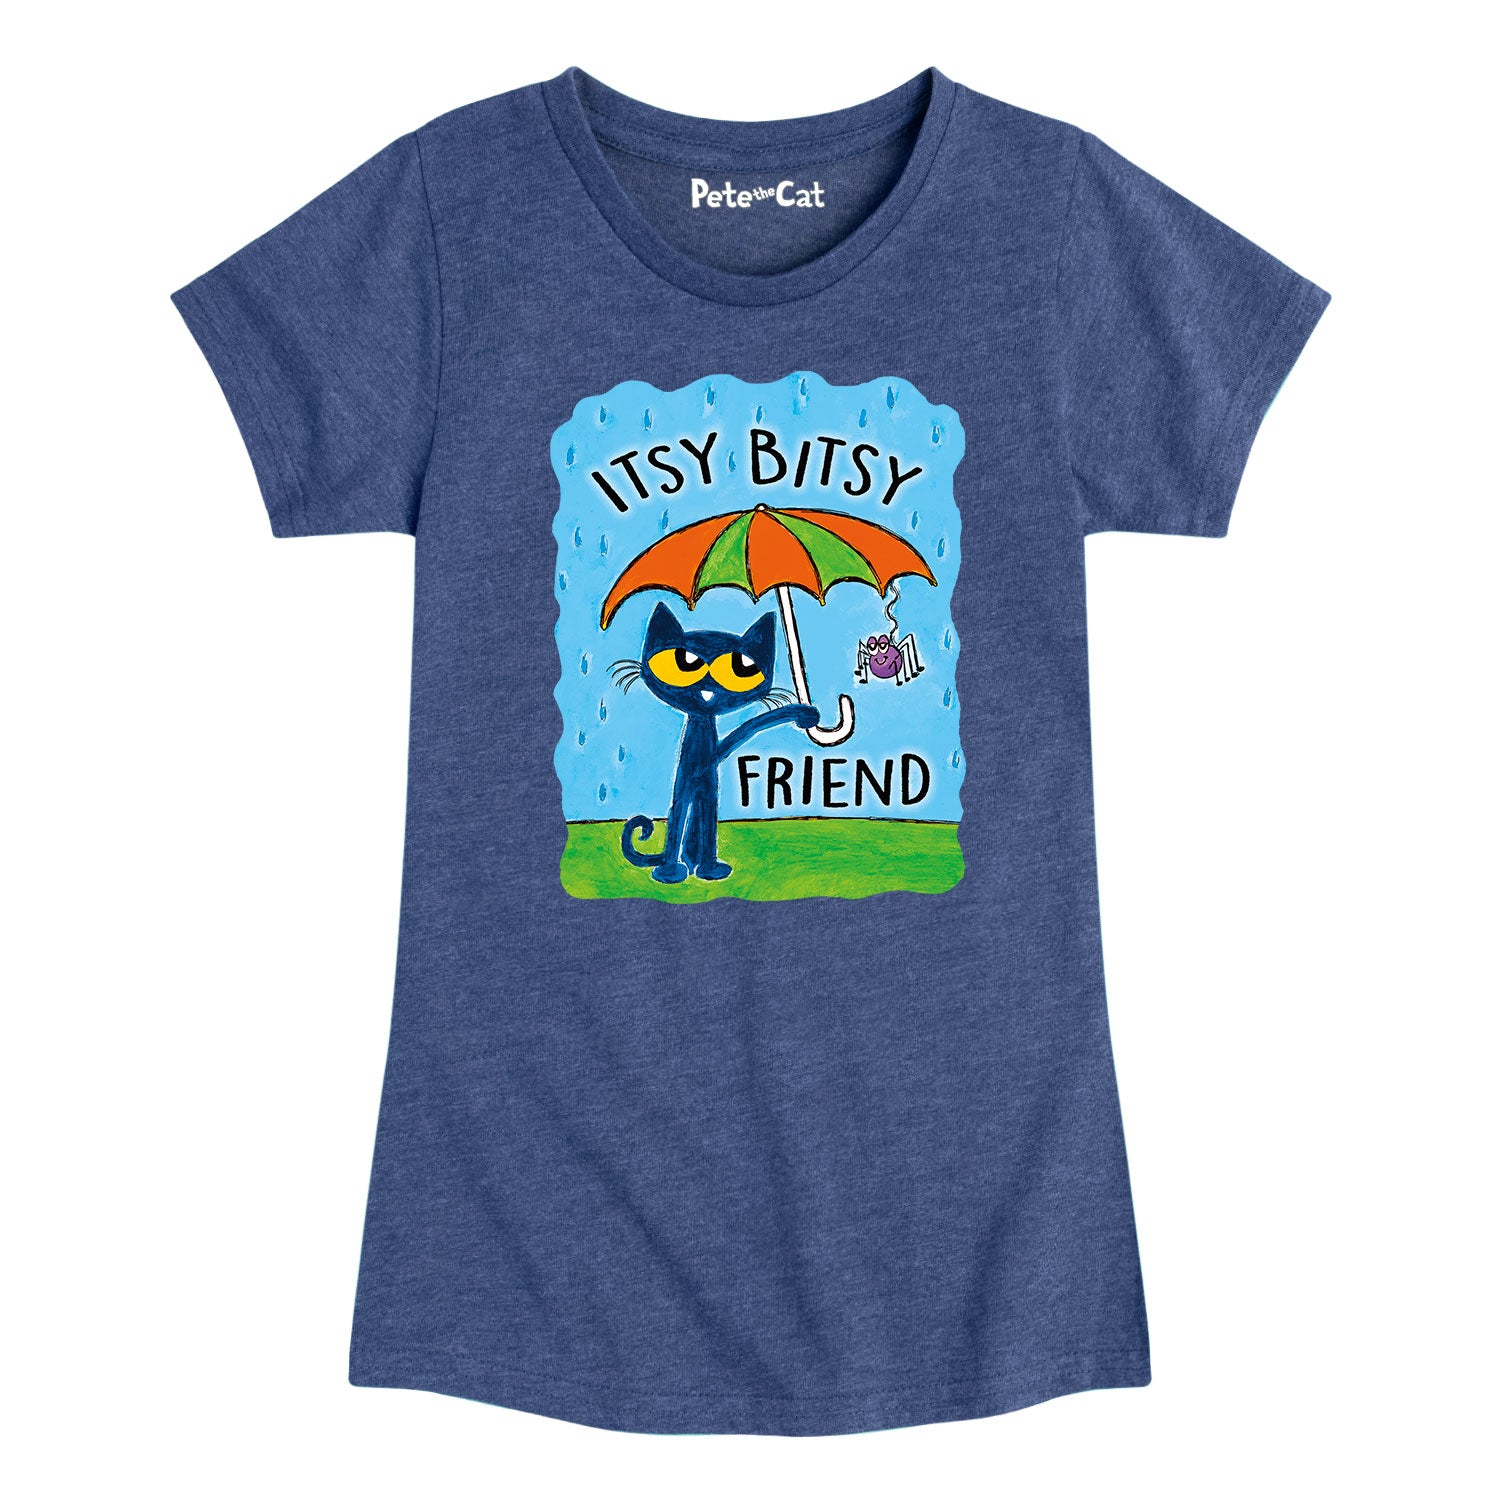 Itsy Bitsy Friend - Youth & Toddler Girls Short Sleeve T-Shirt